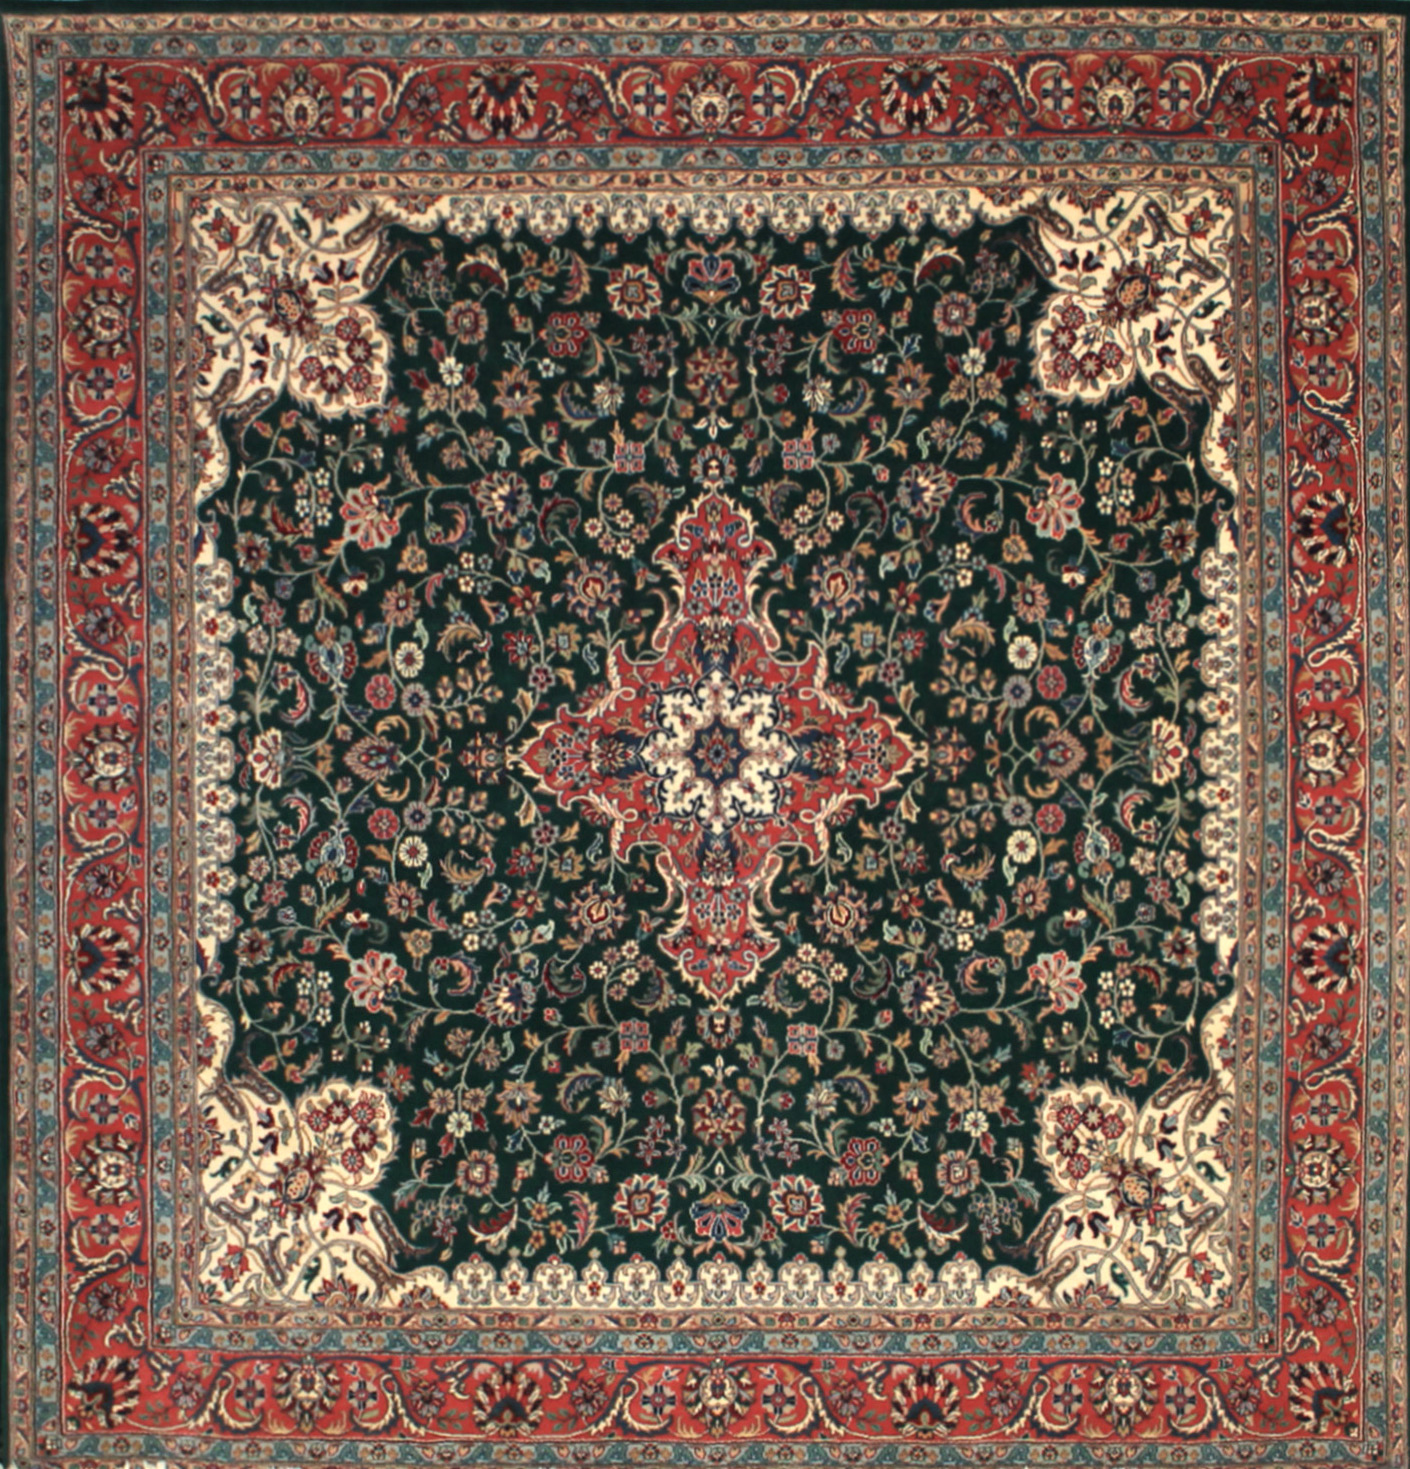 8 ft. Round & Square Traditional Hand Knotted Wool Area Rug - MR0953